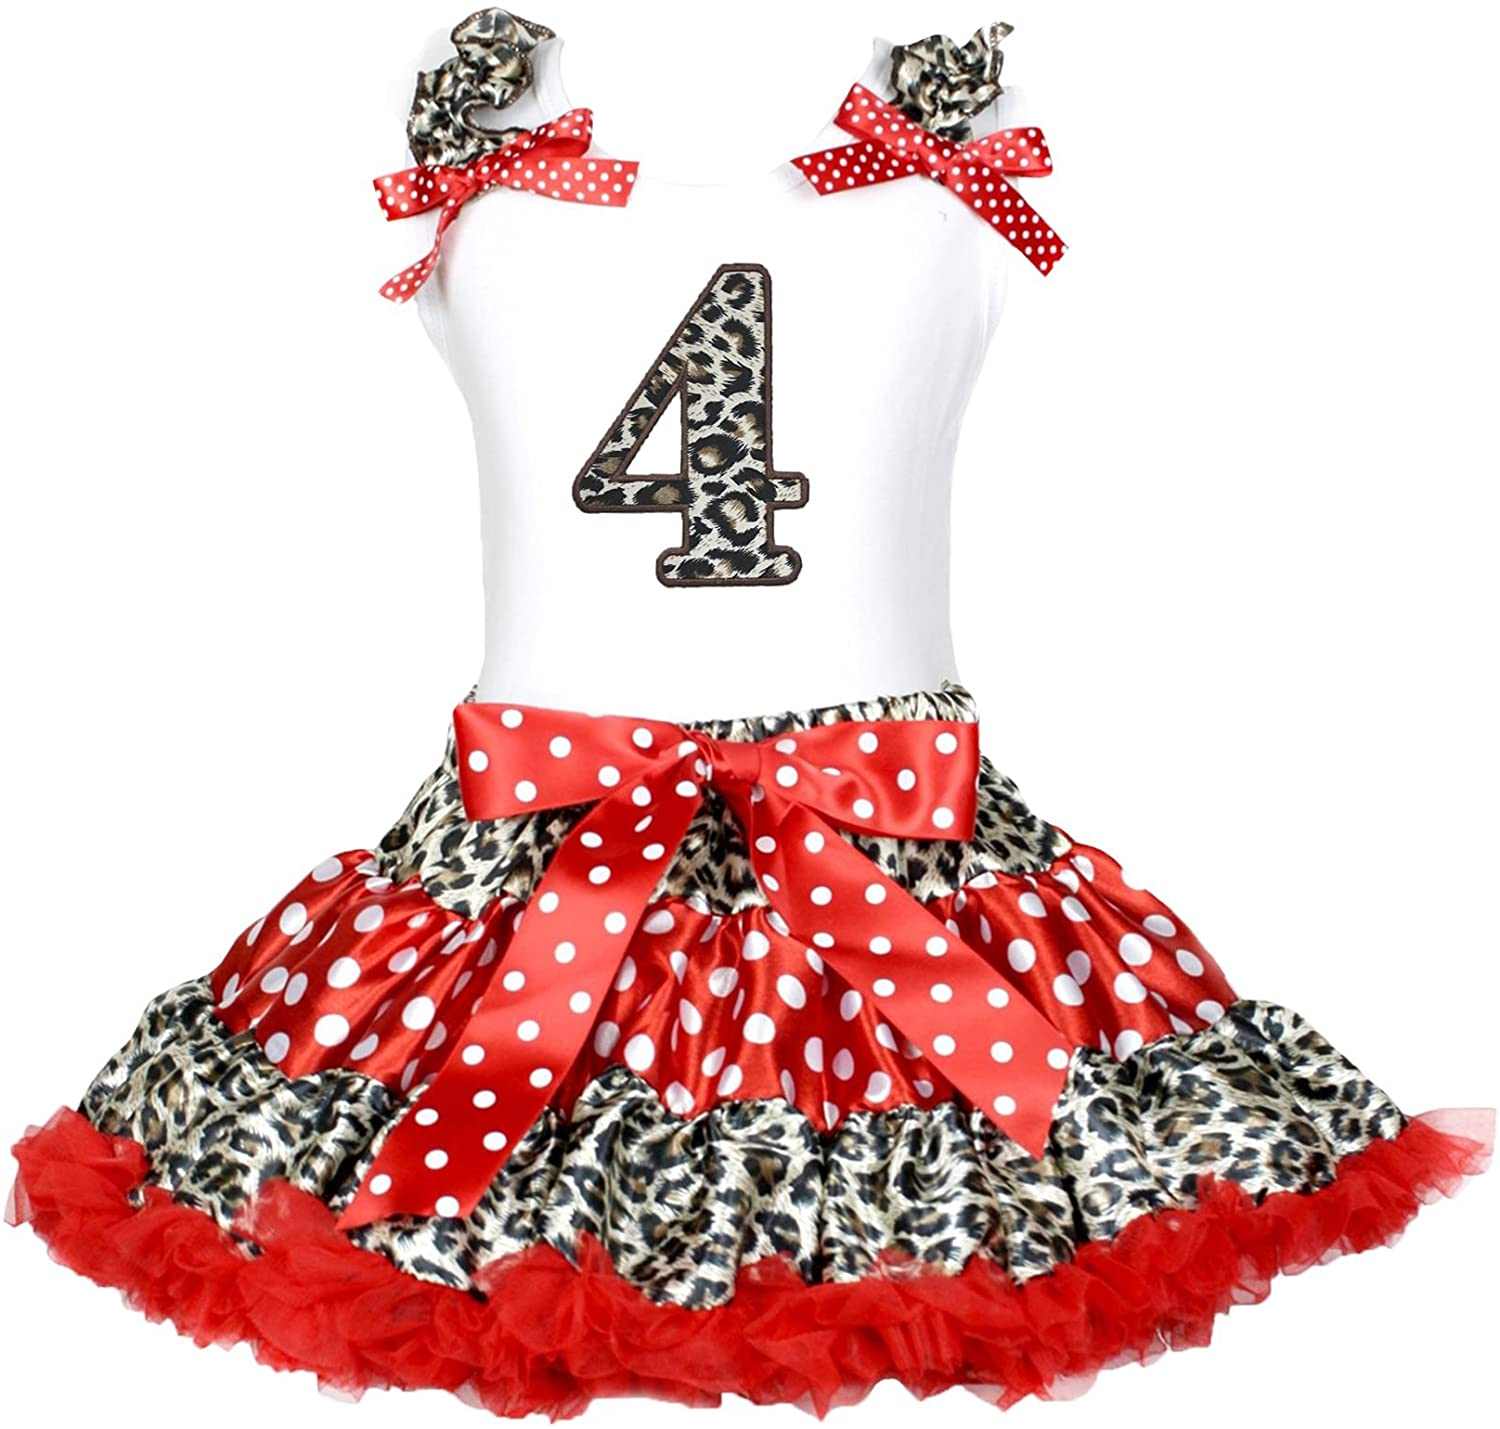 Petitebella Leopard 4th White Shirt Red Leopard Polka Dots Skirt Outfit 1-8y